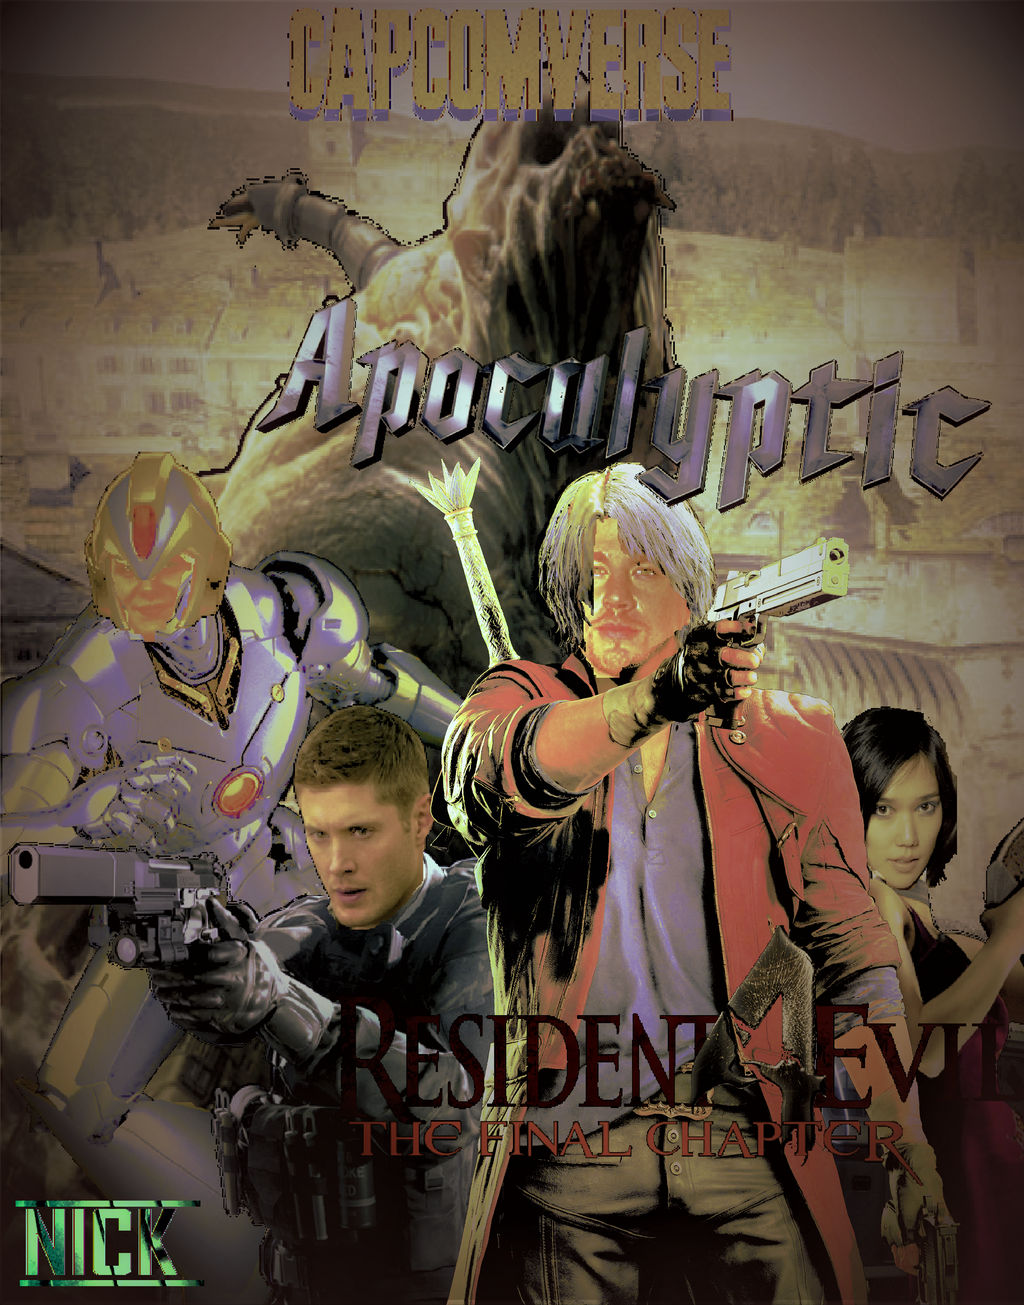 Resident Evil 4 The Final Chapter Poster 2 By Nicolascage49 On